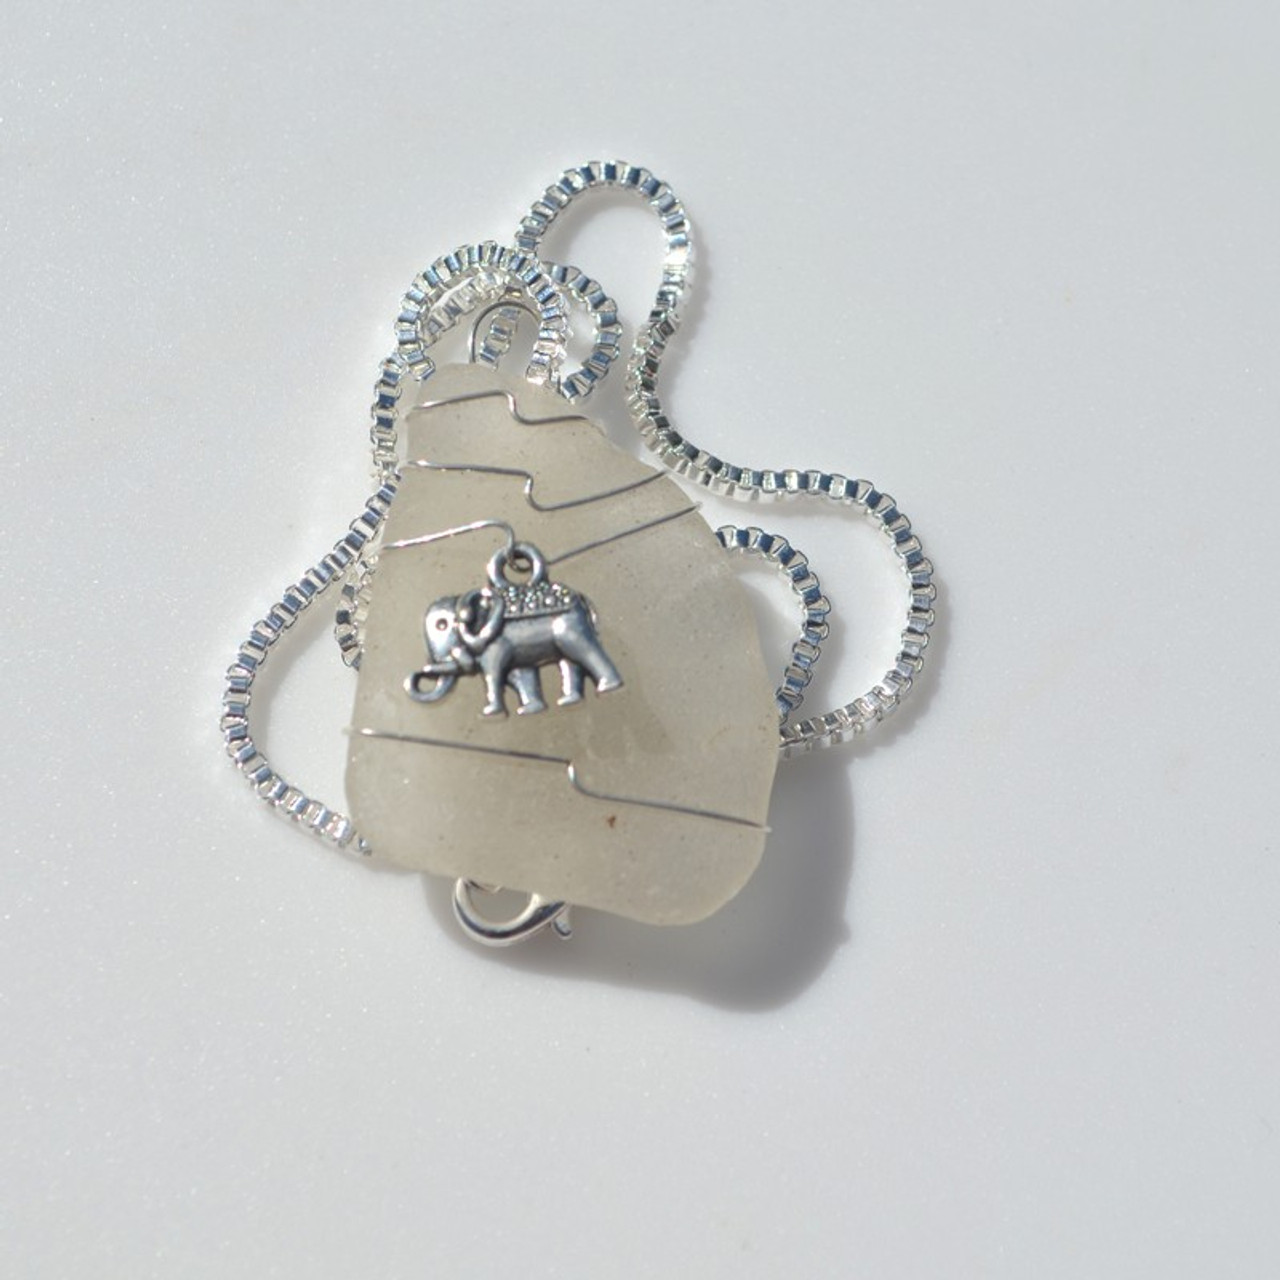 Handmade Genuine Sea Glass Necklace with a Silver Elephant Charm - Choose the Color - Frosted, Green, Brown, or Aqua - Made to Order